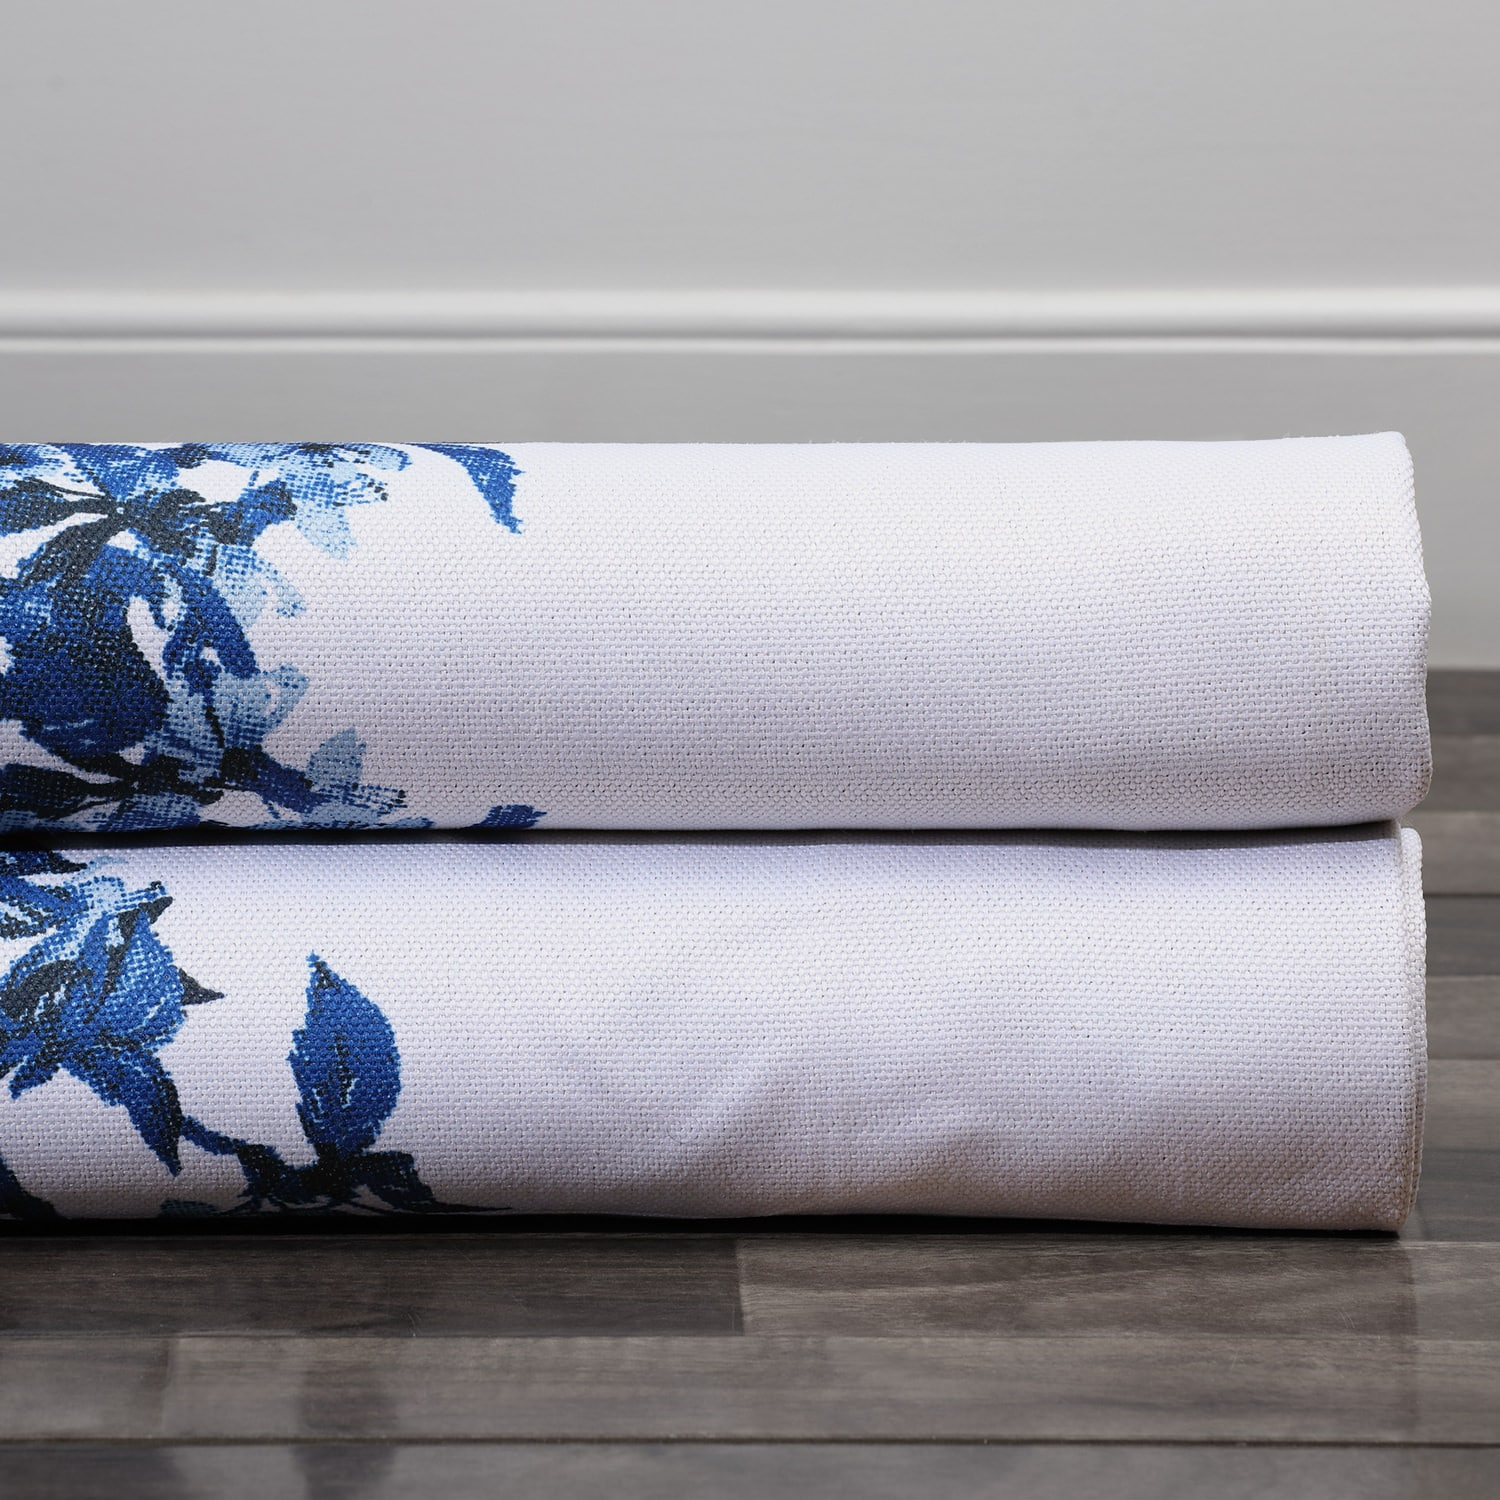 Sparrow Blue Printed Linen Textured Blackout Swatch